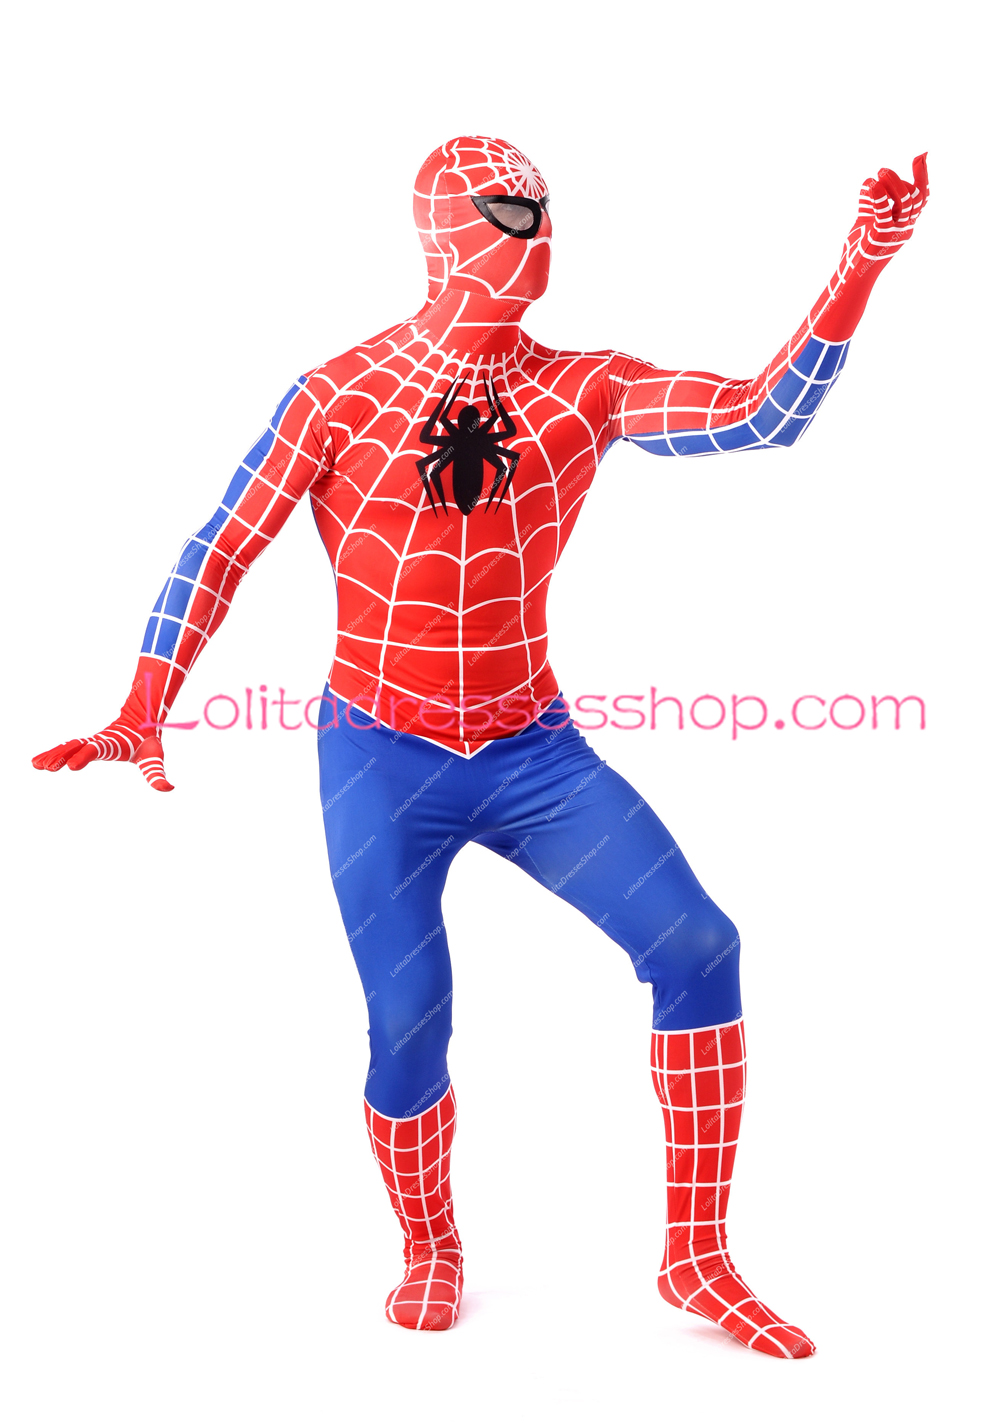 Red Lycra Inspired by Spiderman With White Stripe Full Boday Spandex Cosplay Costumes Zentai Suit